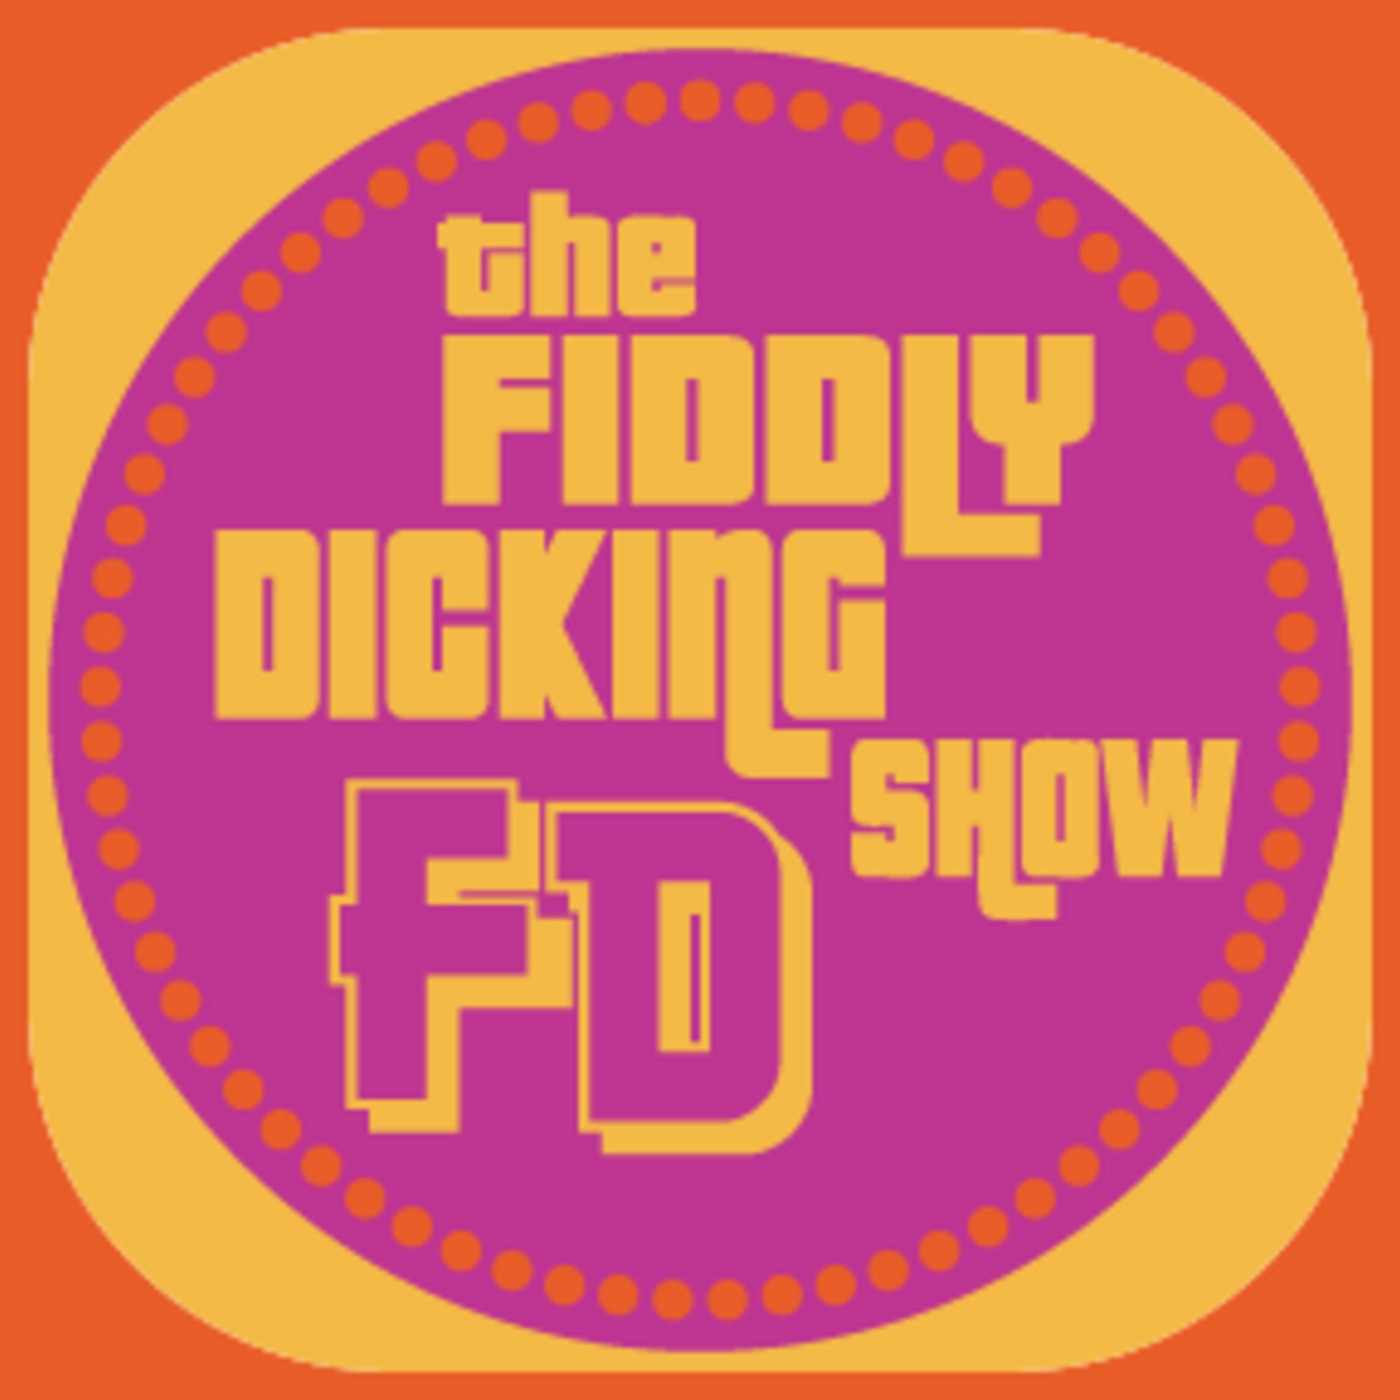 Fiddly Dicking: Bumper Stickers